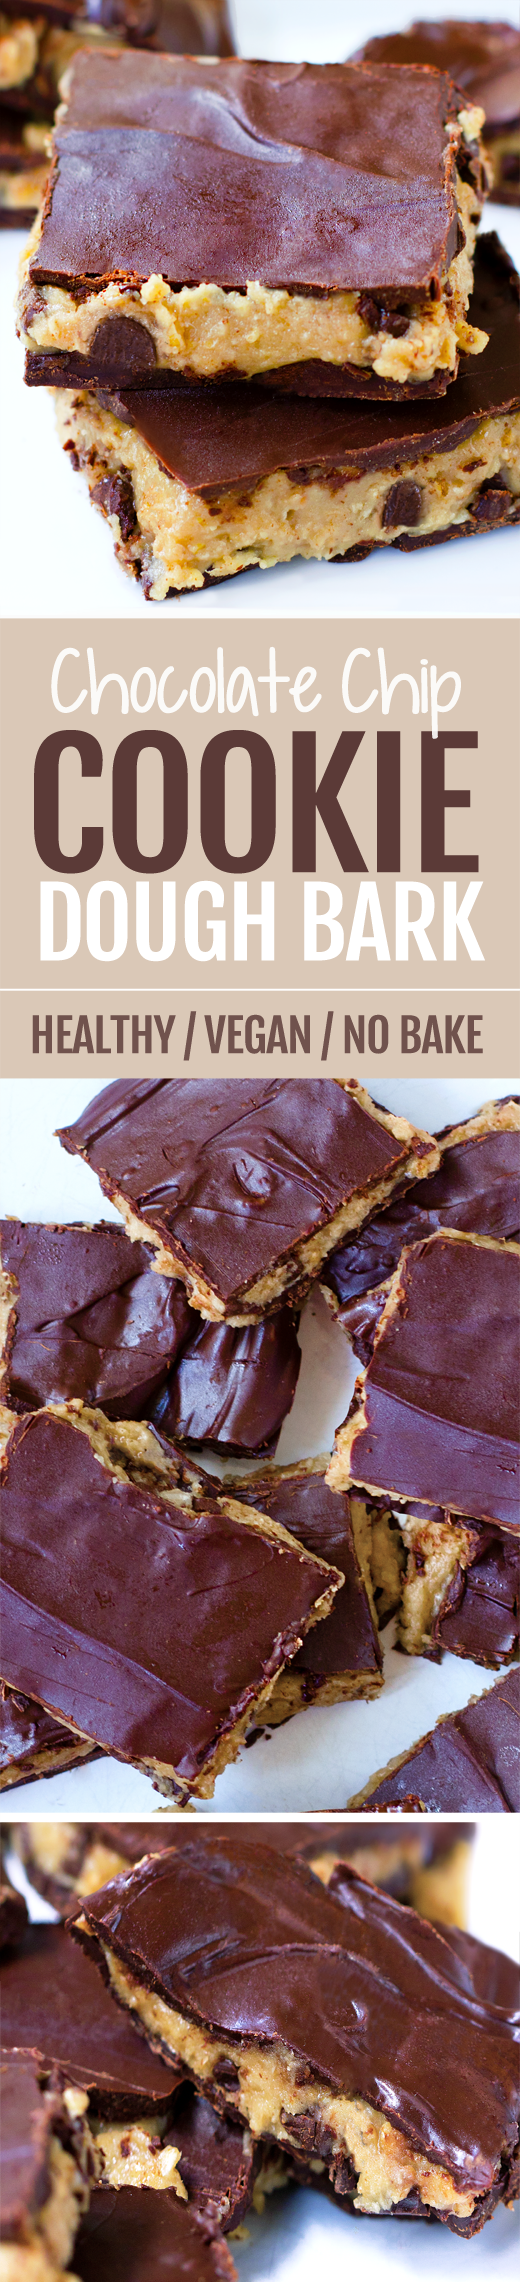 Soft cookie dough bars with a rich chocolate coating, just 8 ingredients and totally vegan! #vegan #chocolate #dessert #healthy